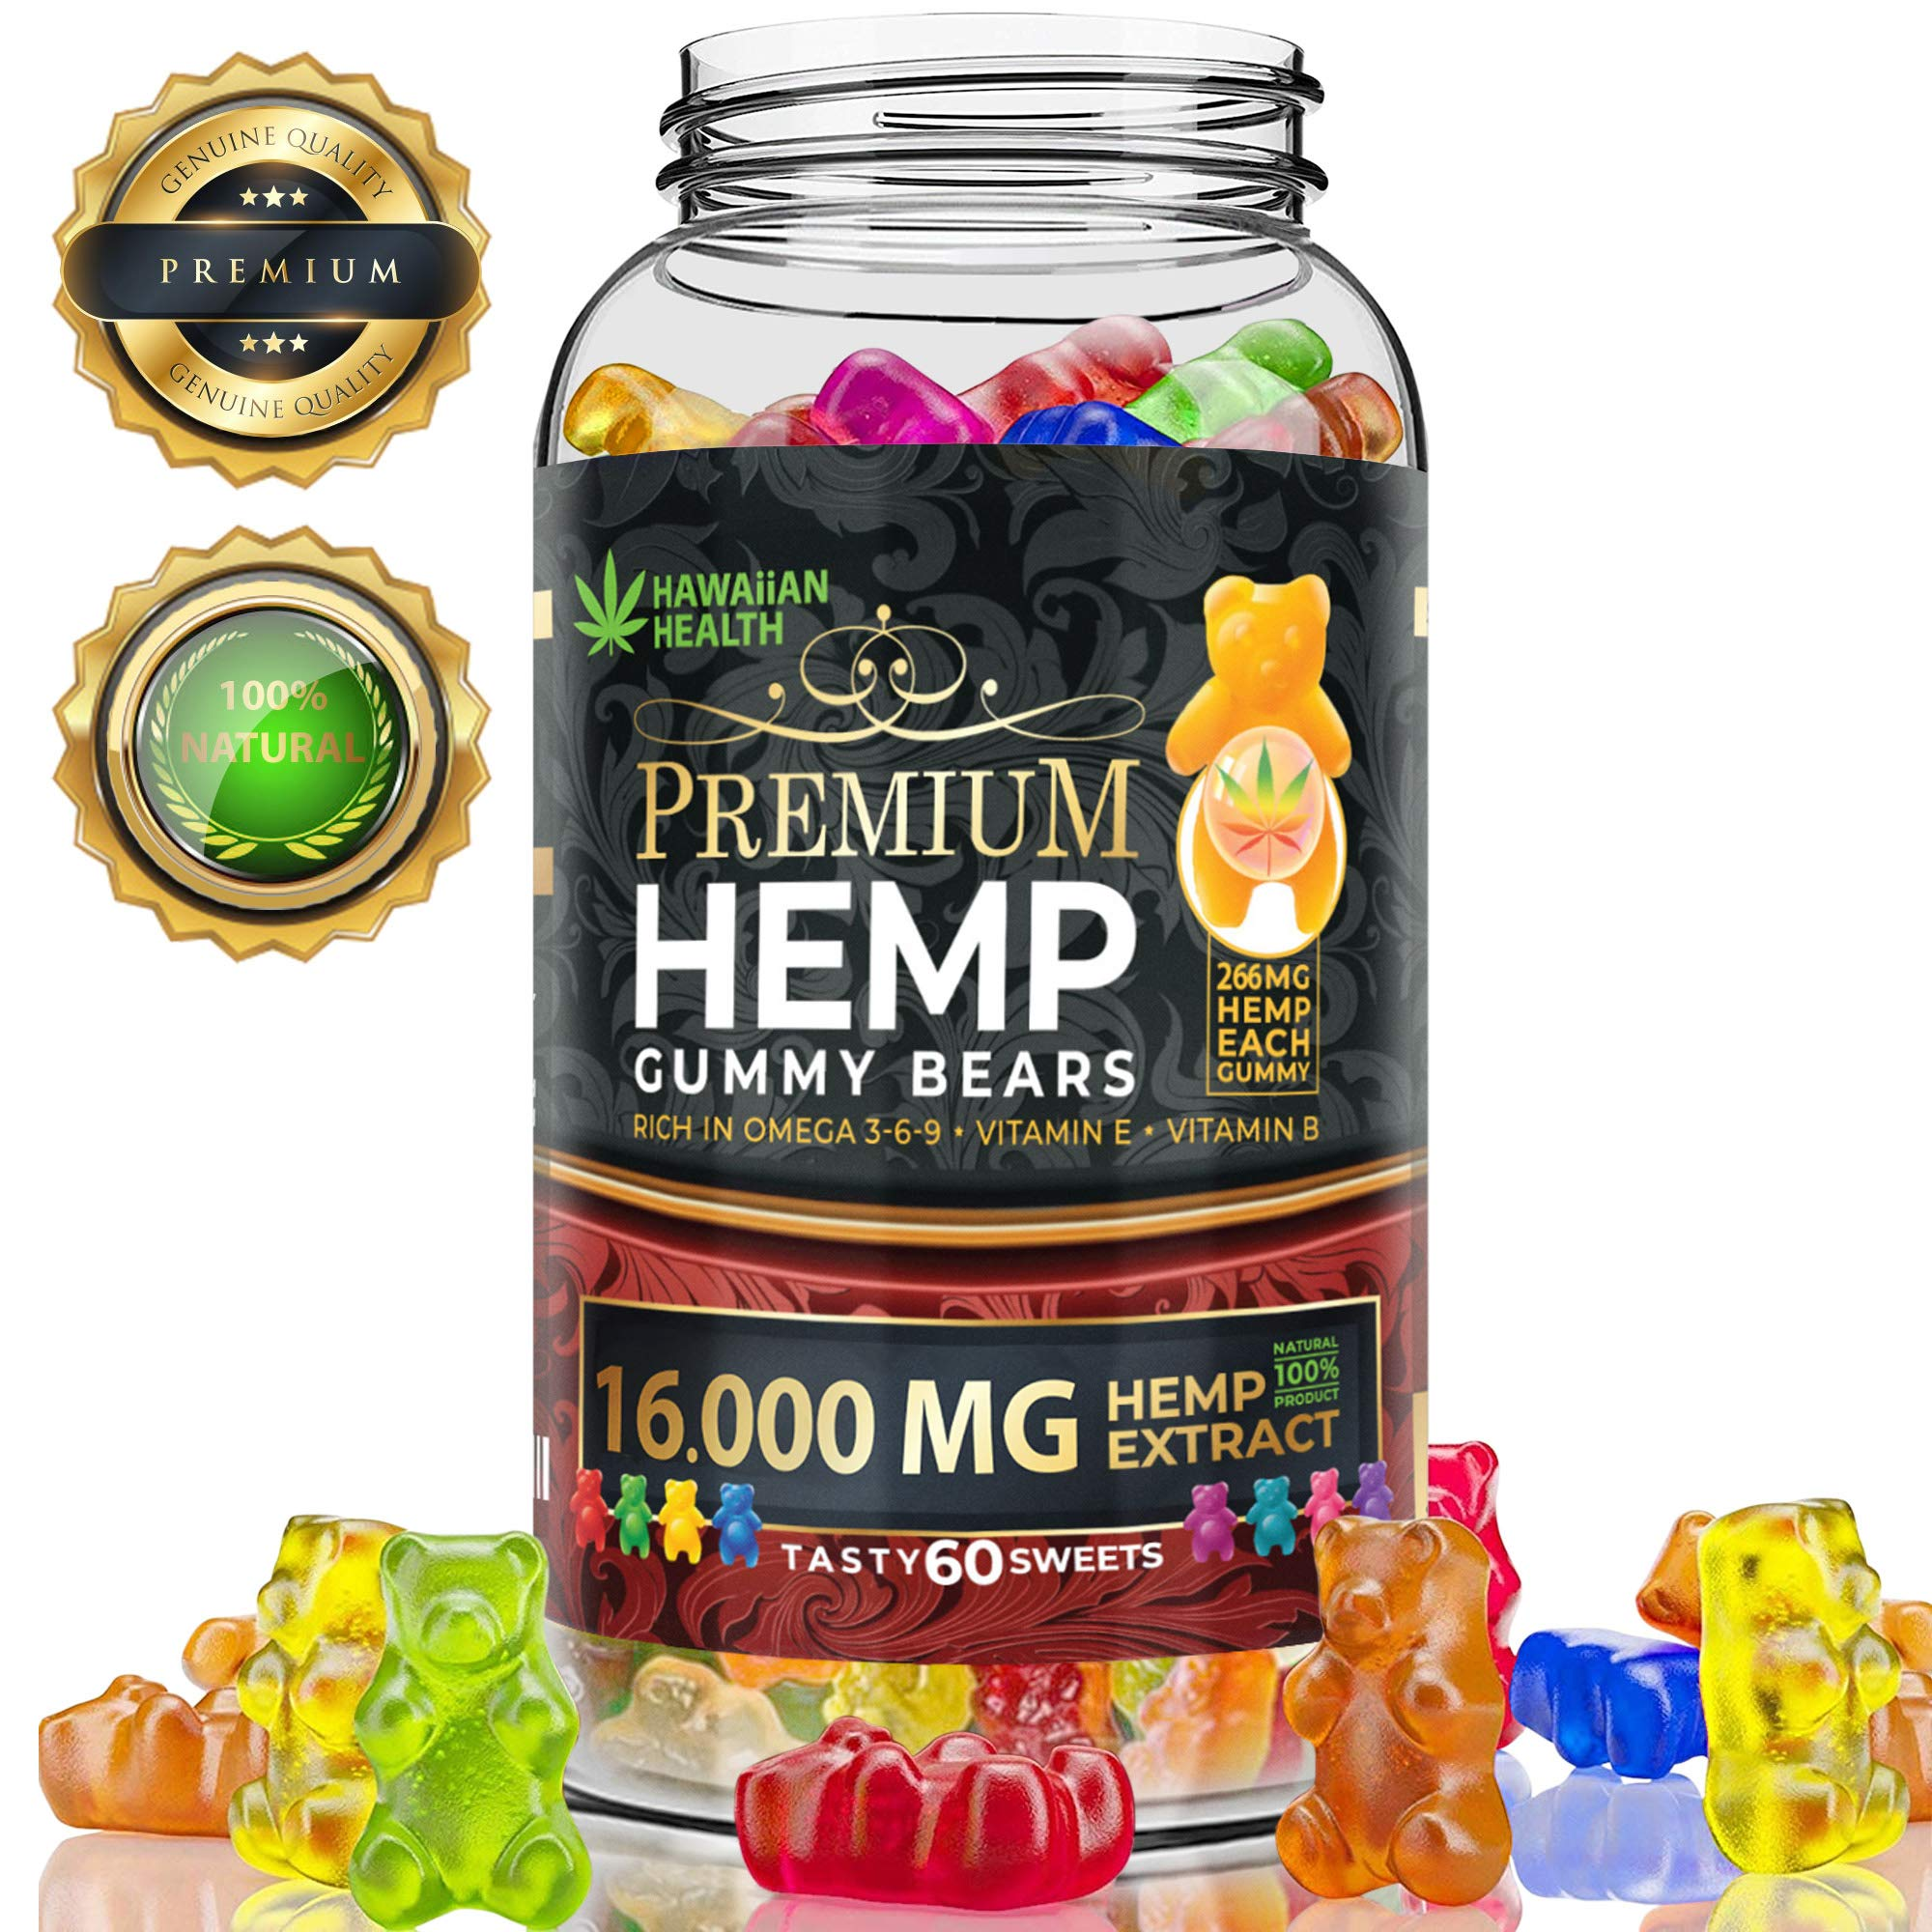 Natural Hemp Gummies 16000MG - 266MG Per Fruity Gummy Bear with Organic Hemp Oil | Natural Hemp Candy Supplements for Pain, Anxiety, Stress & Inflammation Relief | Promotes Sleep & Calm Mood by Hawaiian health